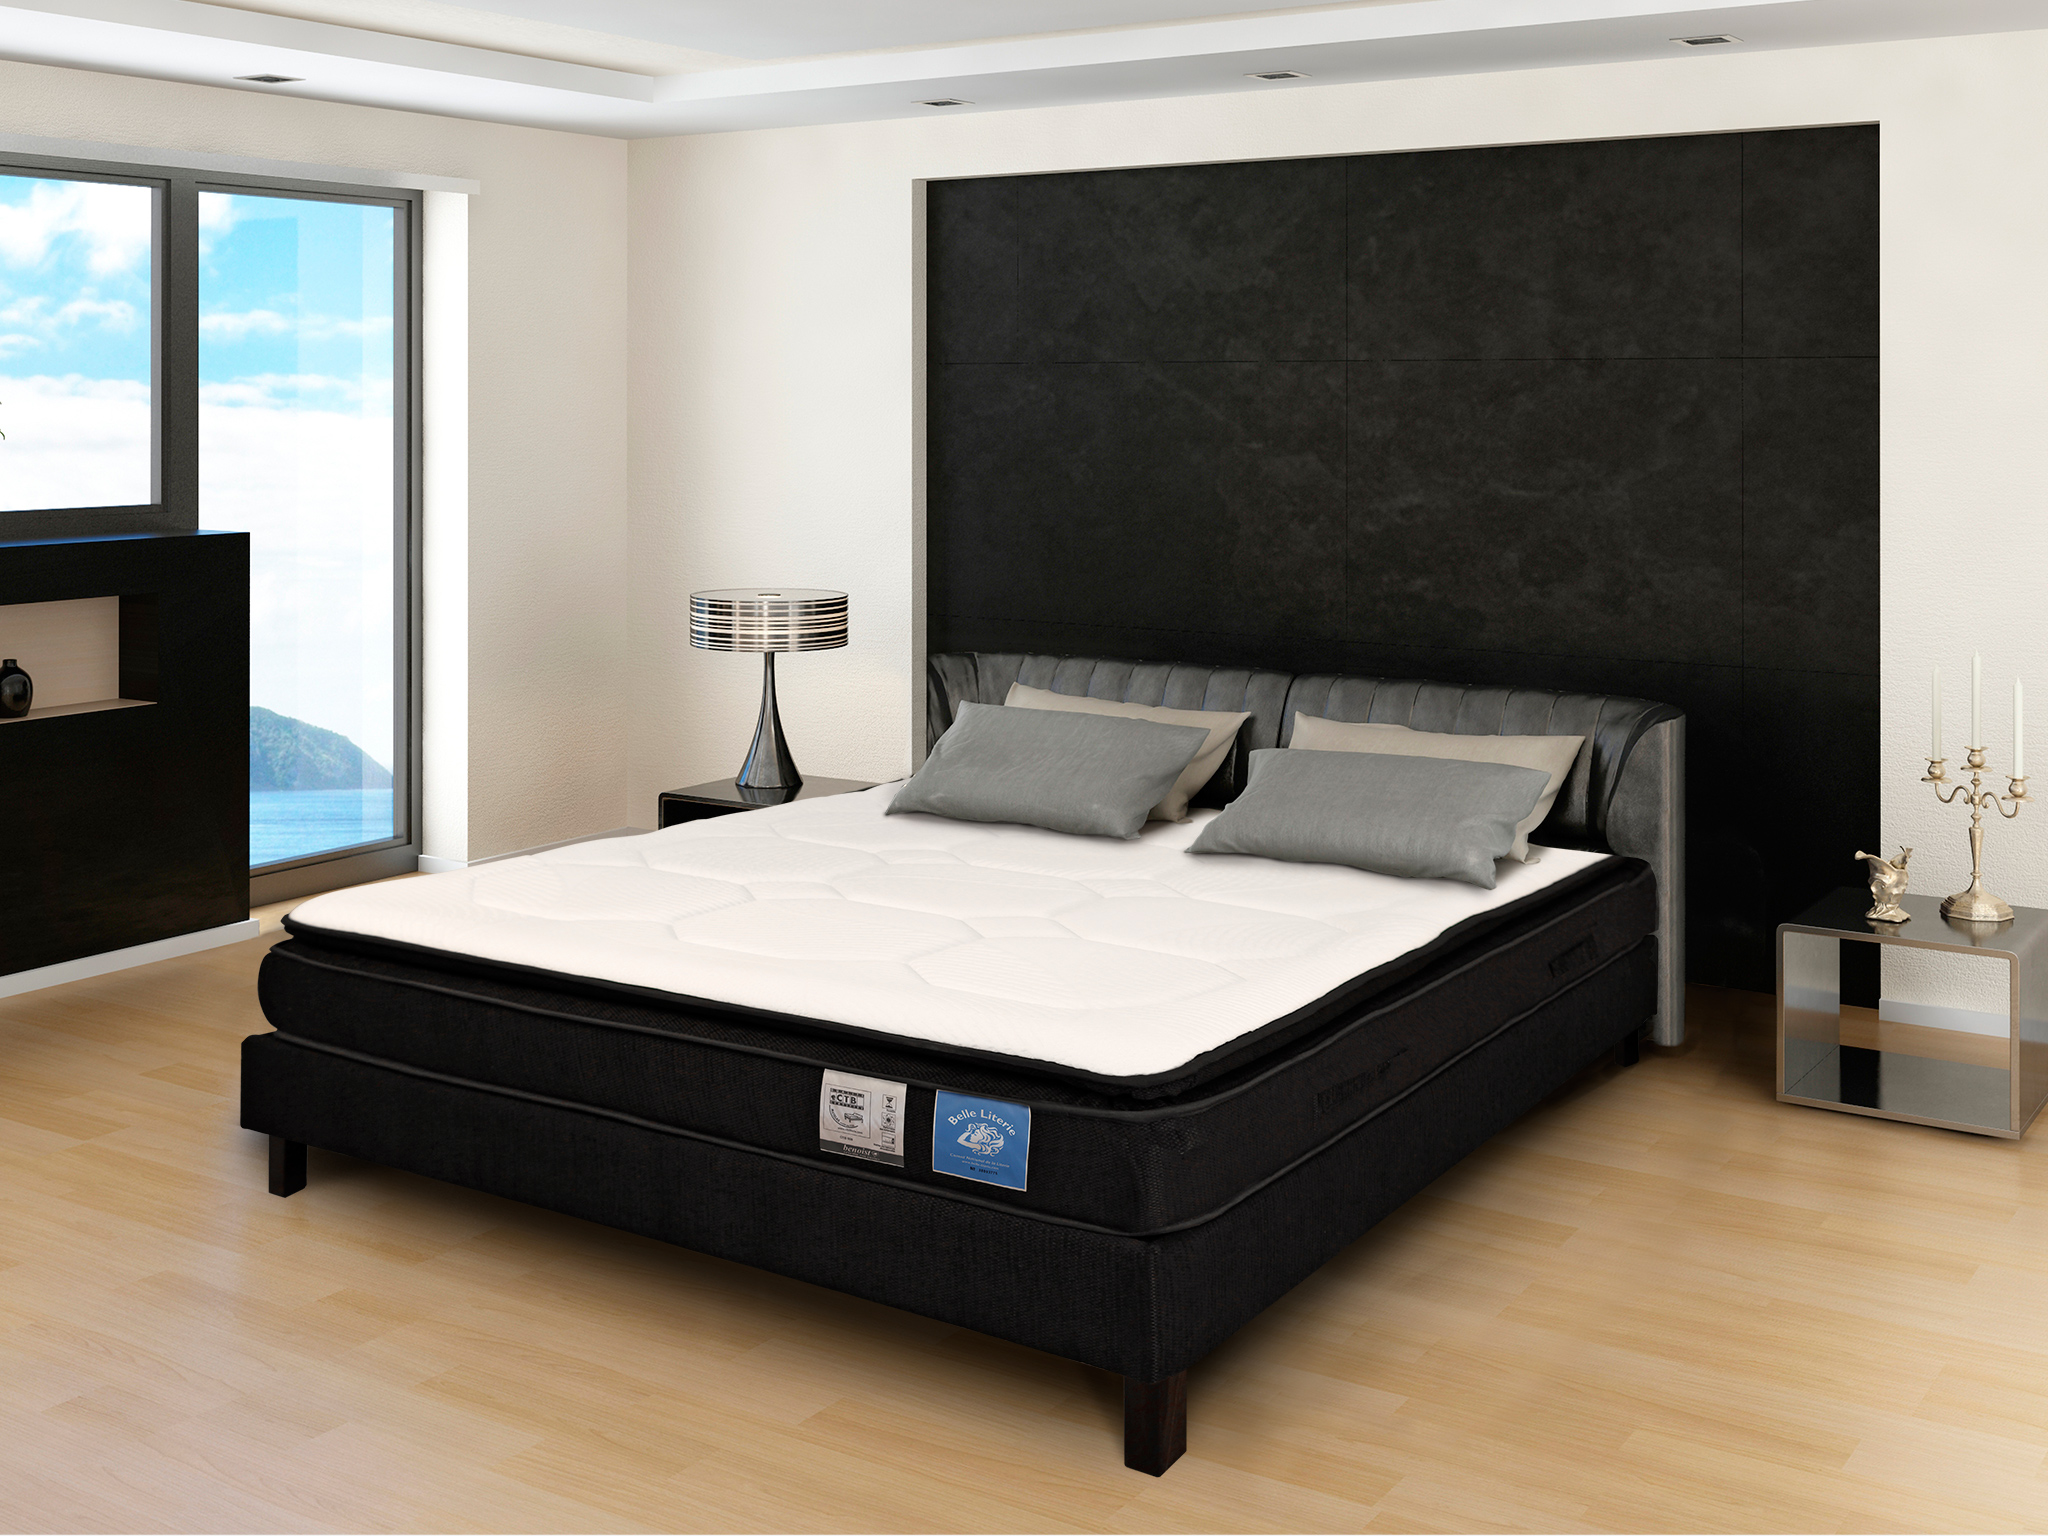 l gant matelas 160 200 latex id es de bain de soleil. Black Bedroom Furniture Sets. Home Design Ideas